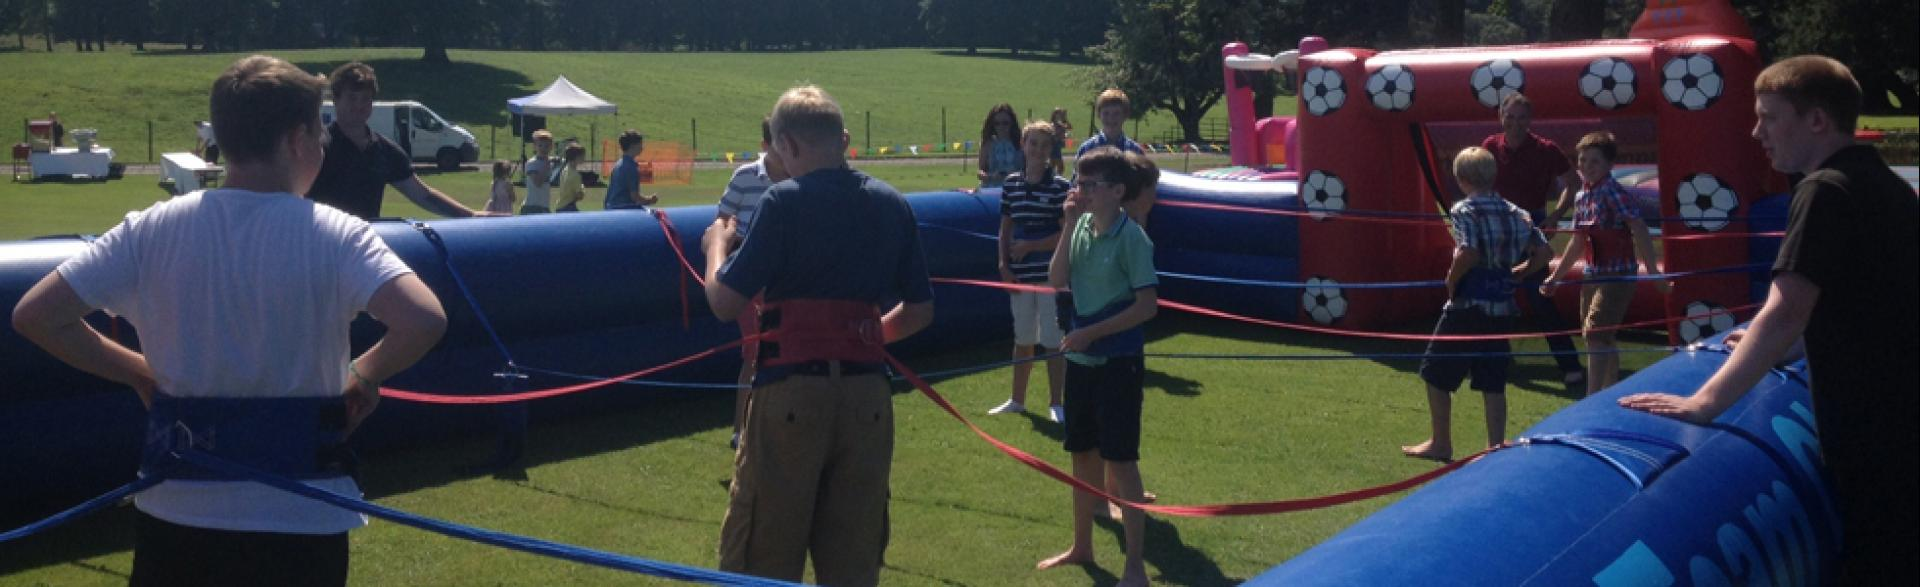 Corporate Family Fun Day, Aberdeenshire, July 2014